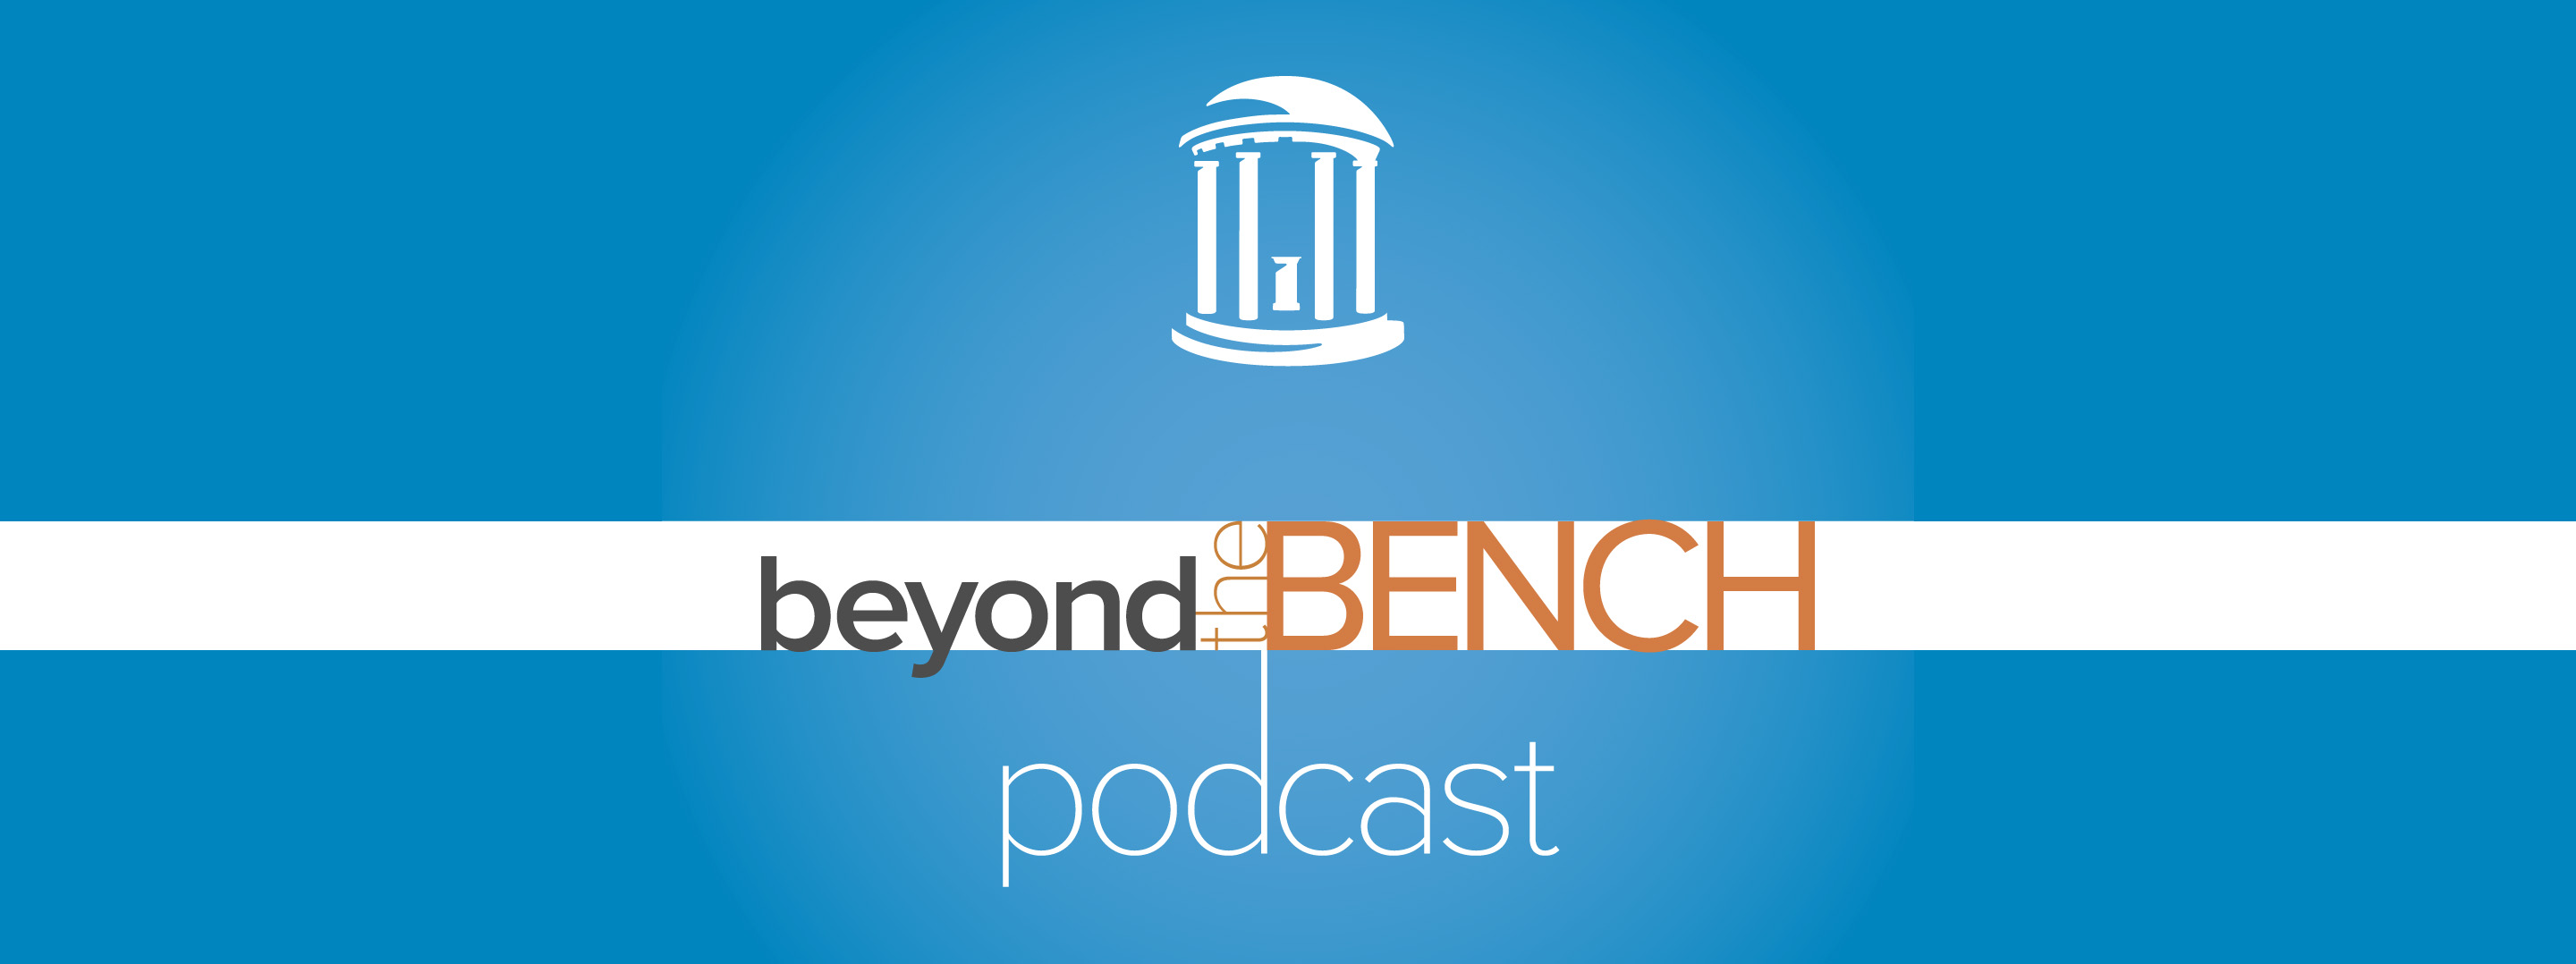 Podcast Beyond the Bench